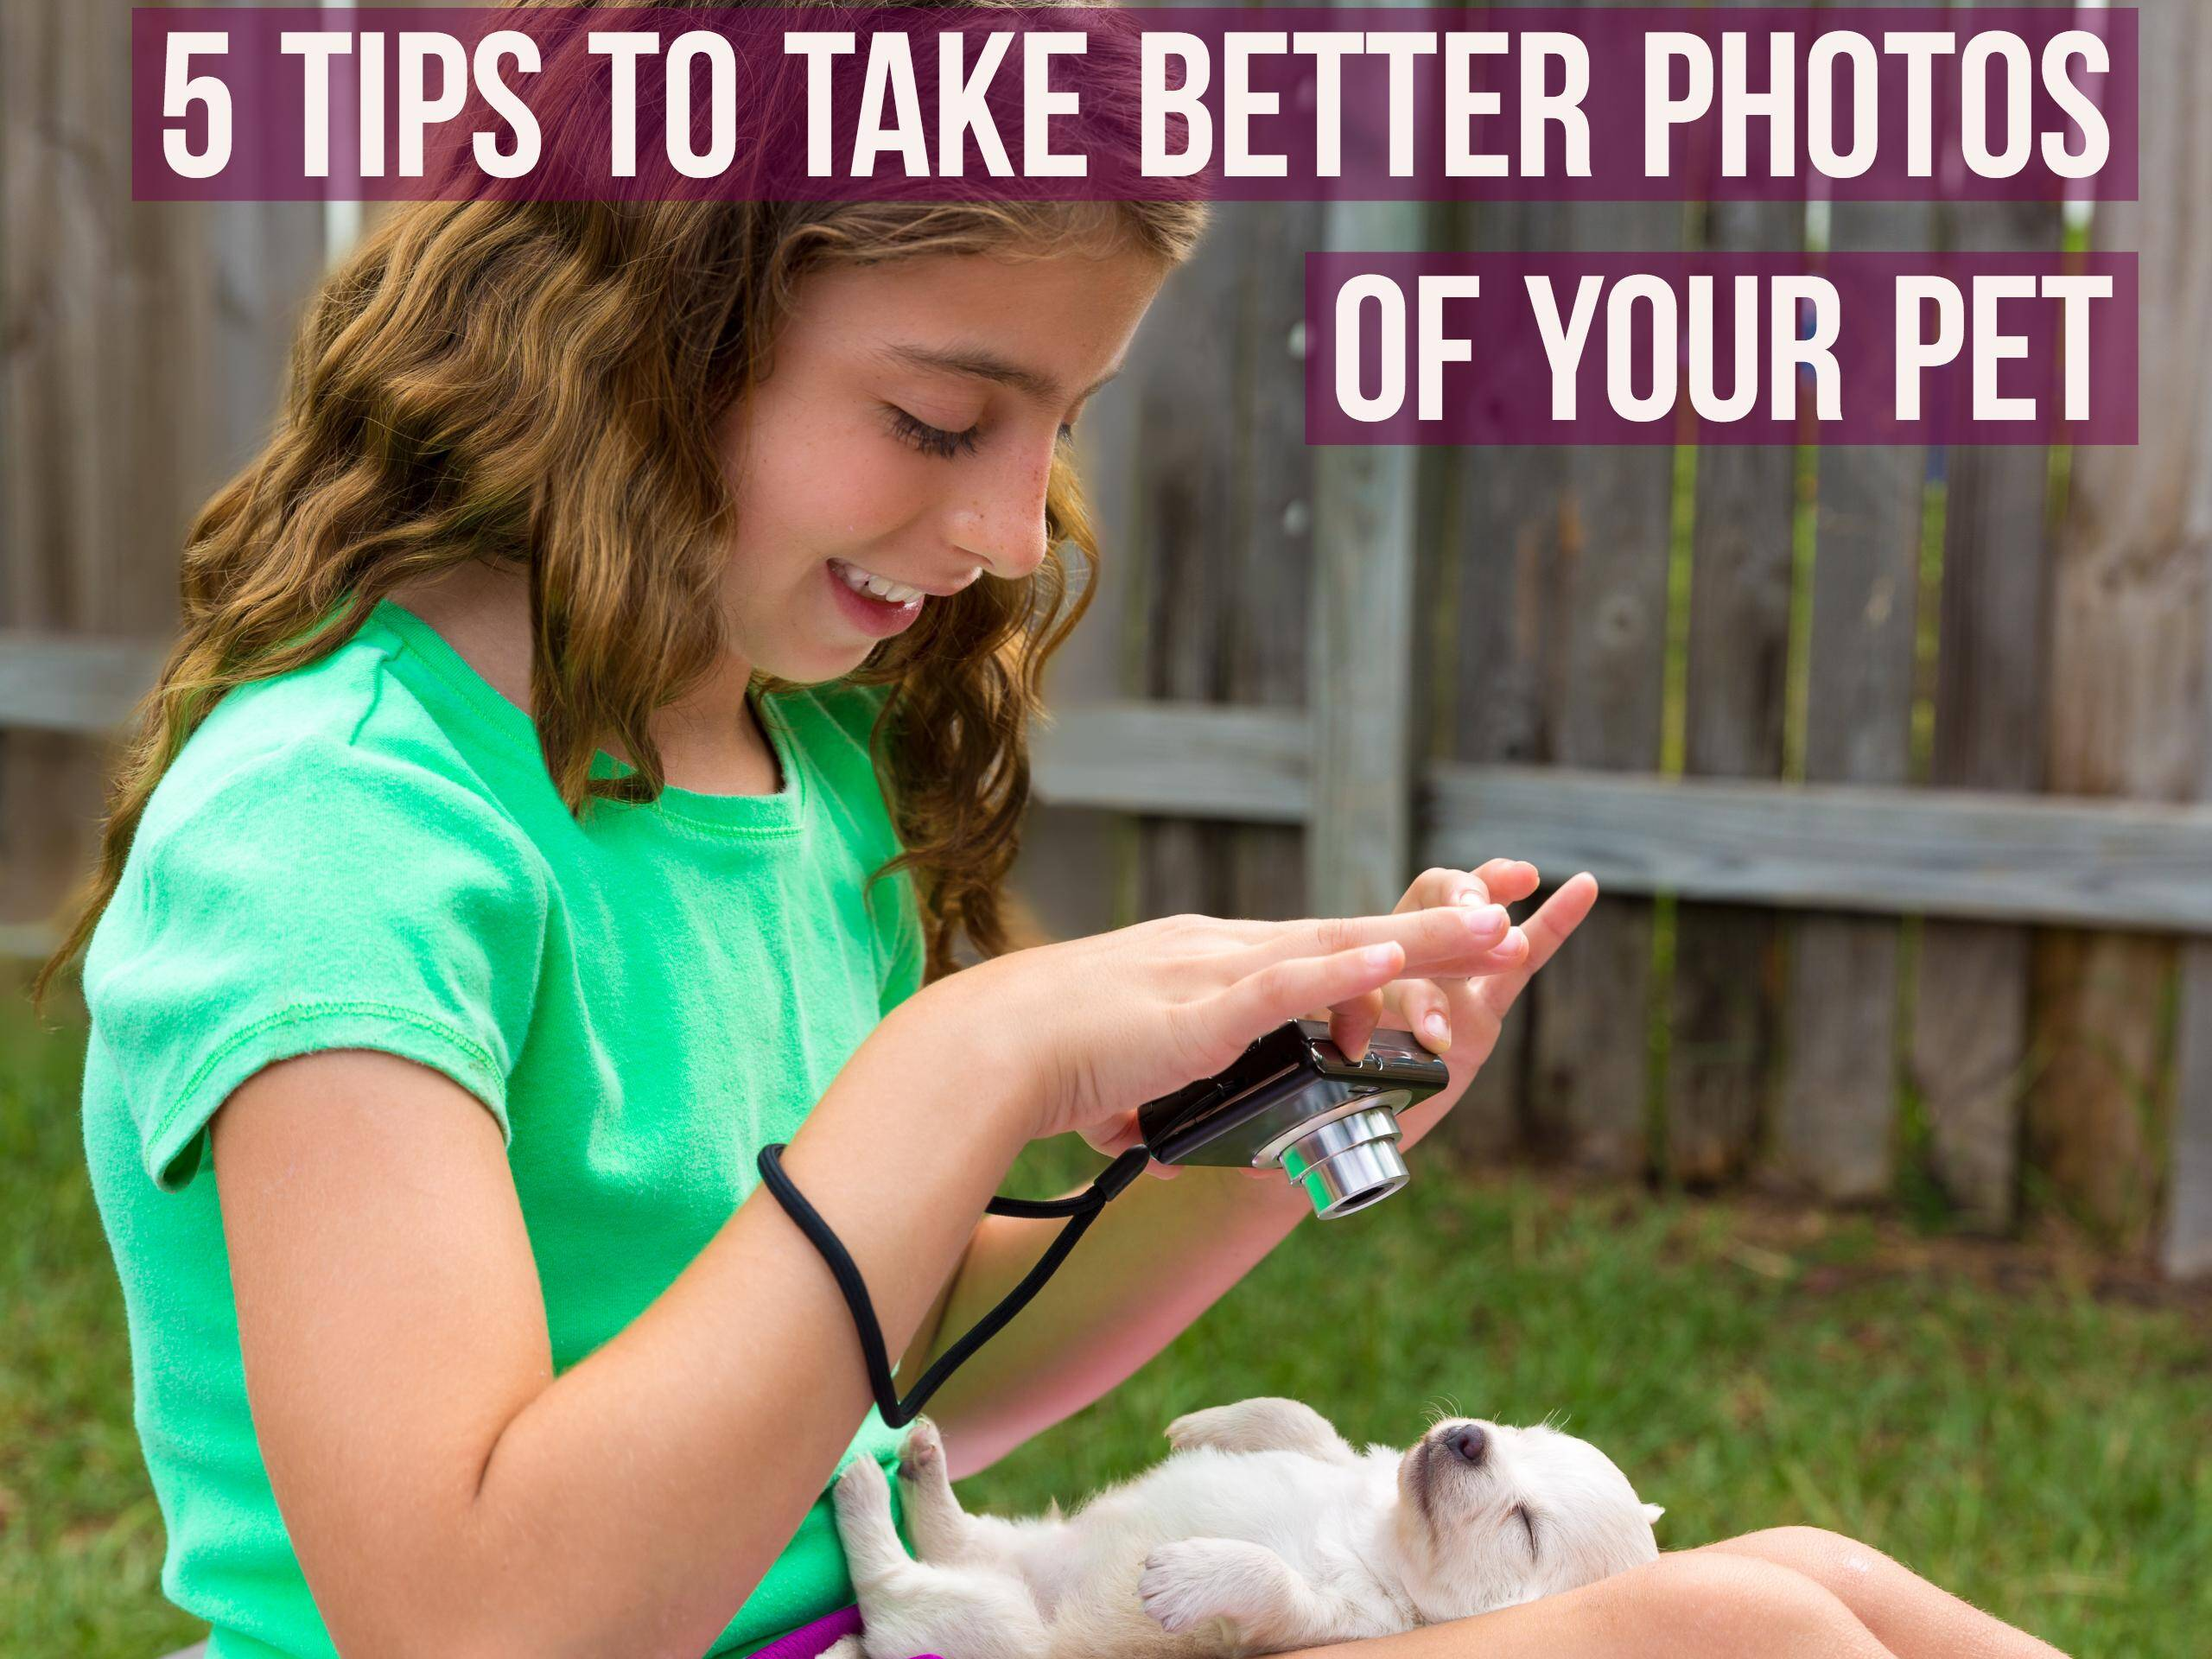 5 Tips To Take Better Photos of Your Pet